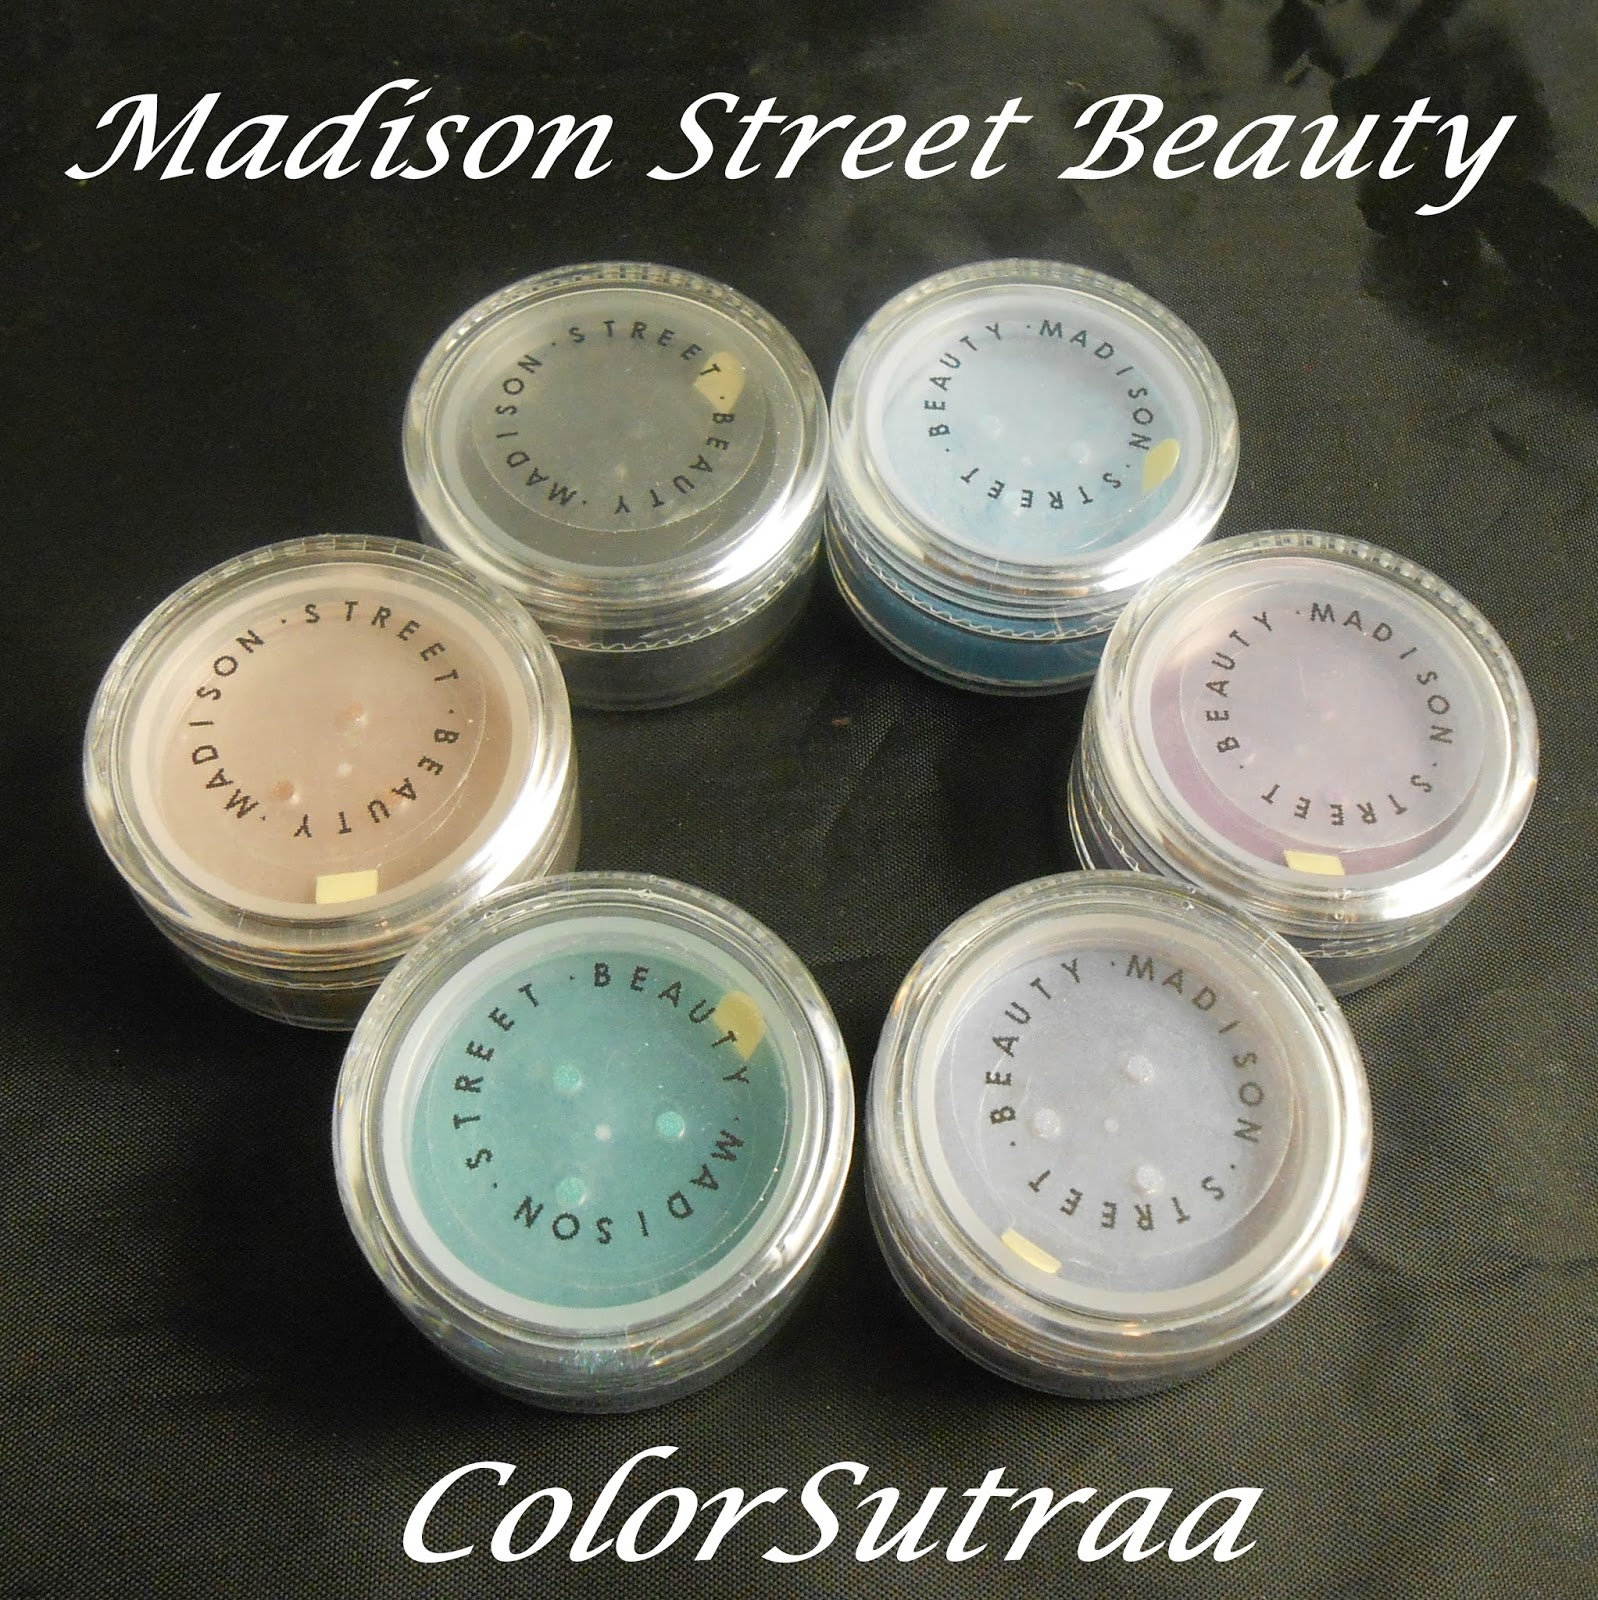 Madison street beauty